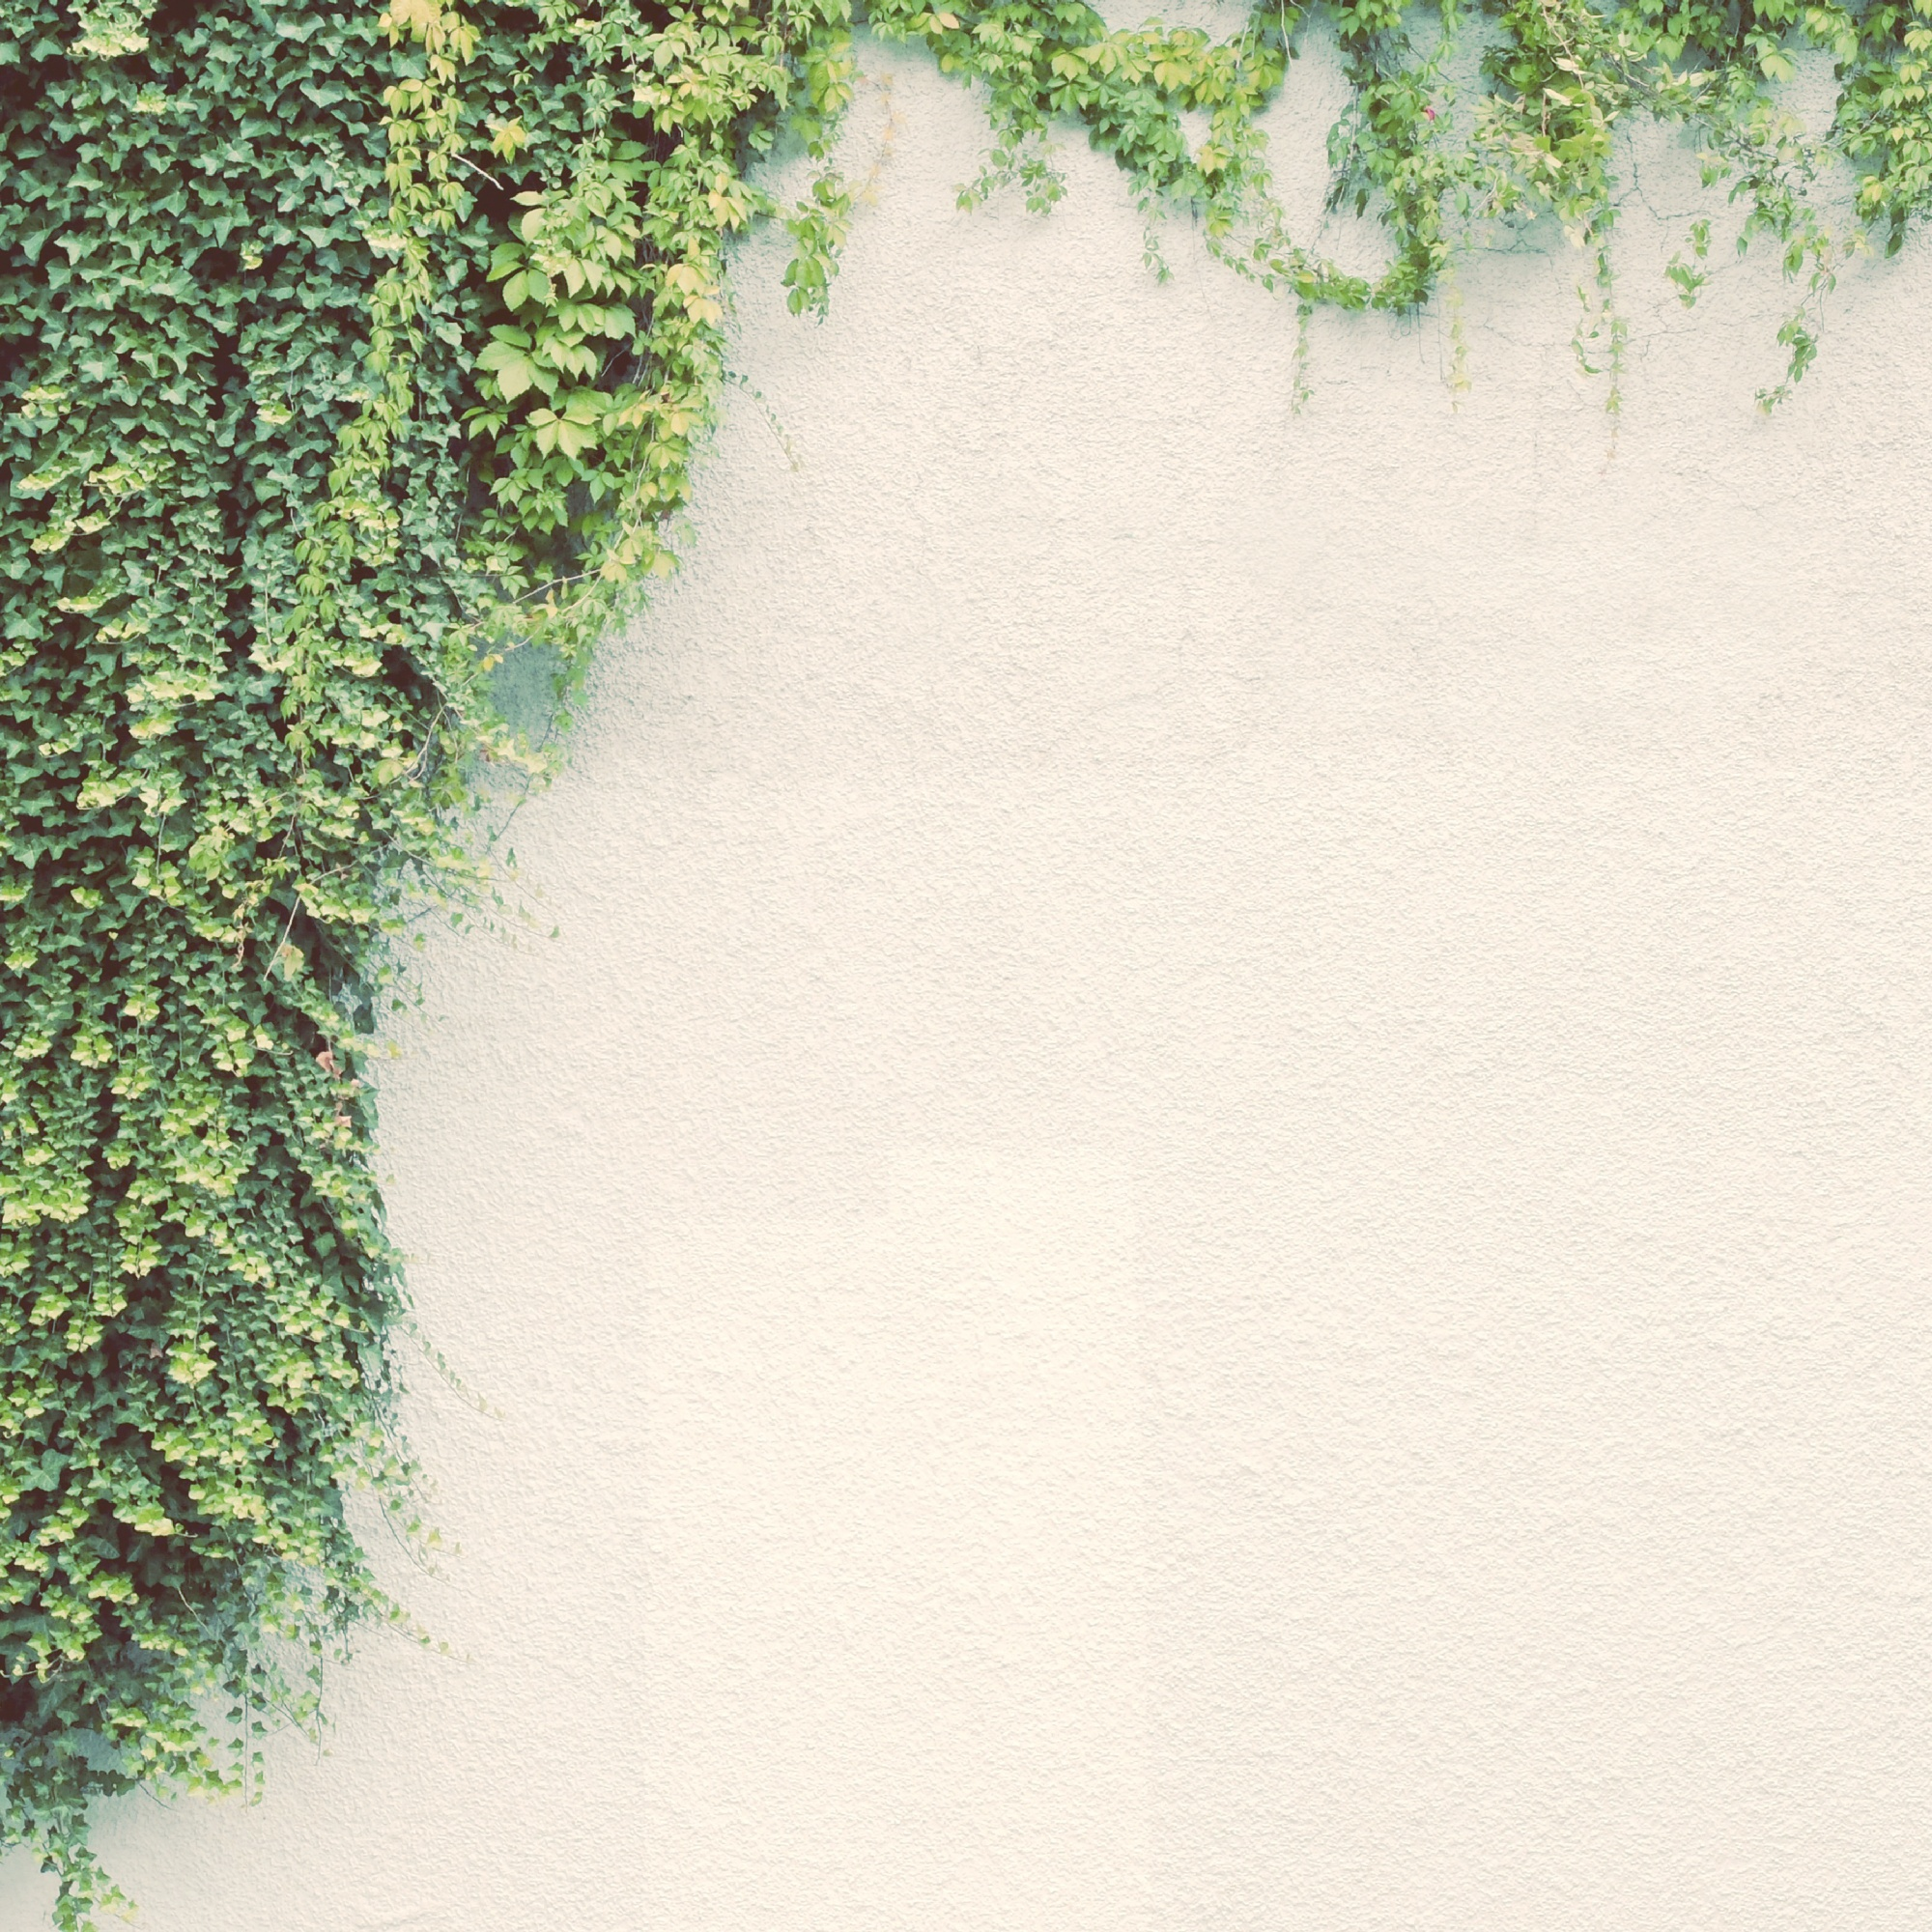 Ivy plant on white wall with retro filter effect